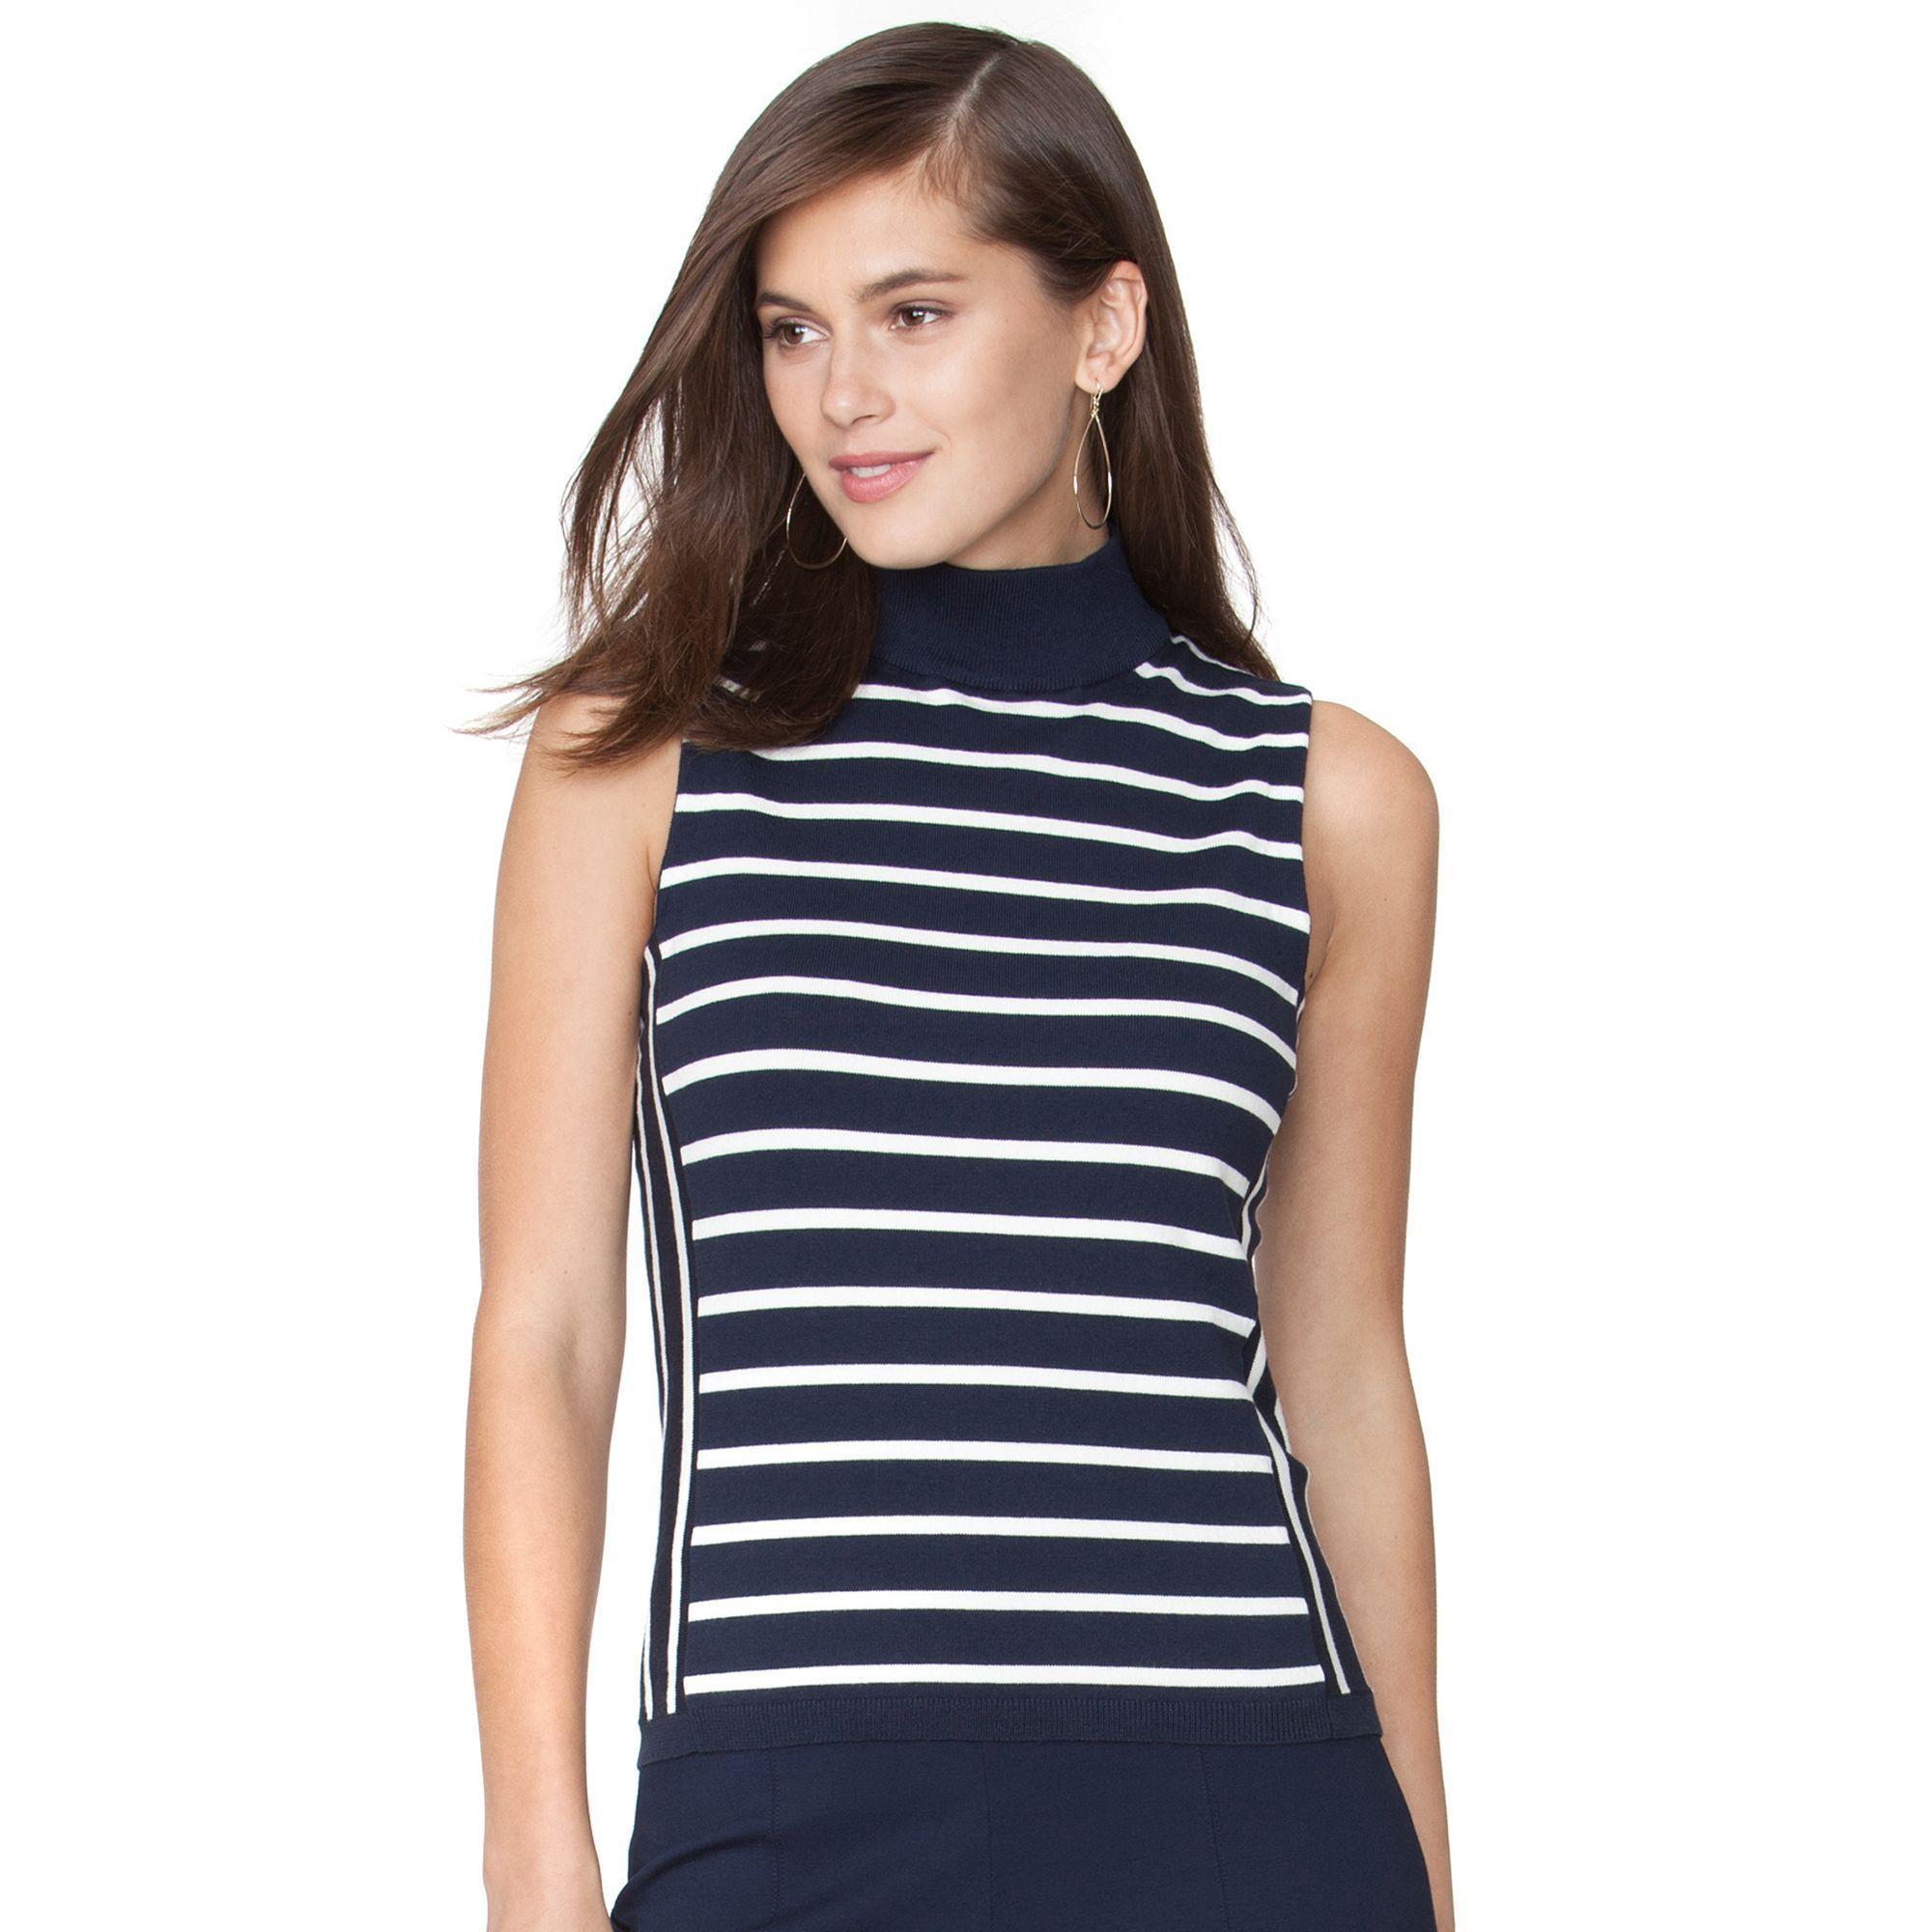 Women's Chaps Striped Sleeveless Sweater, Size: XL, Blue | Products